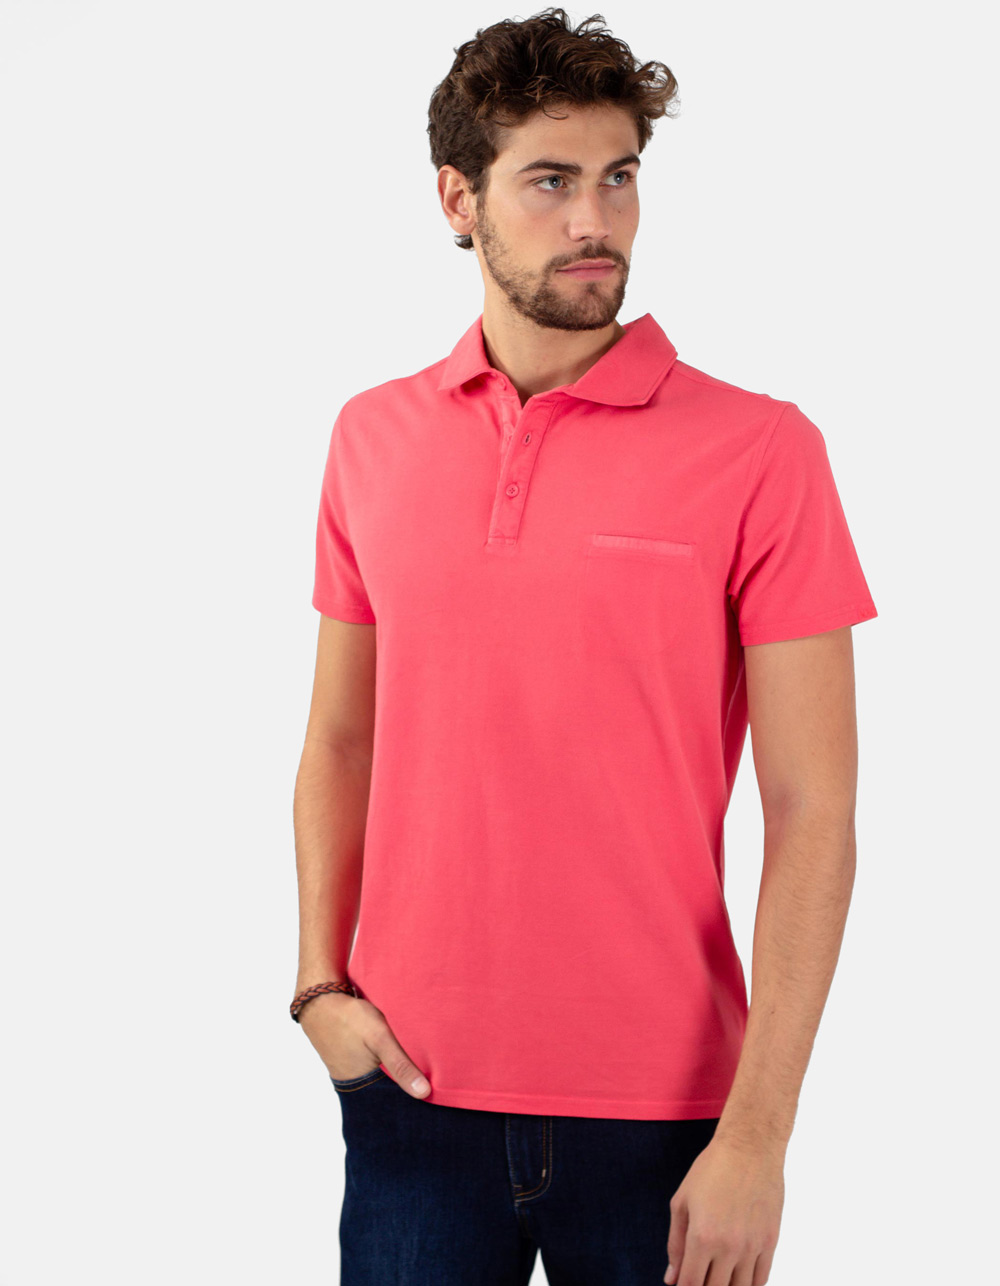 coral pocket piqué polo